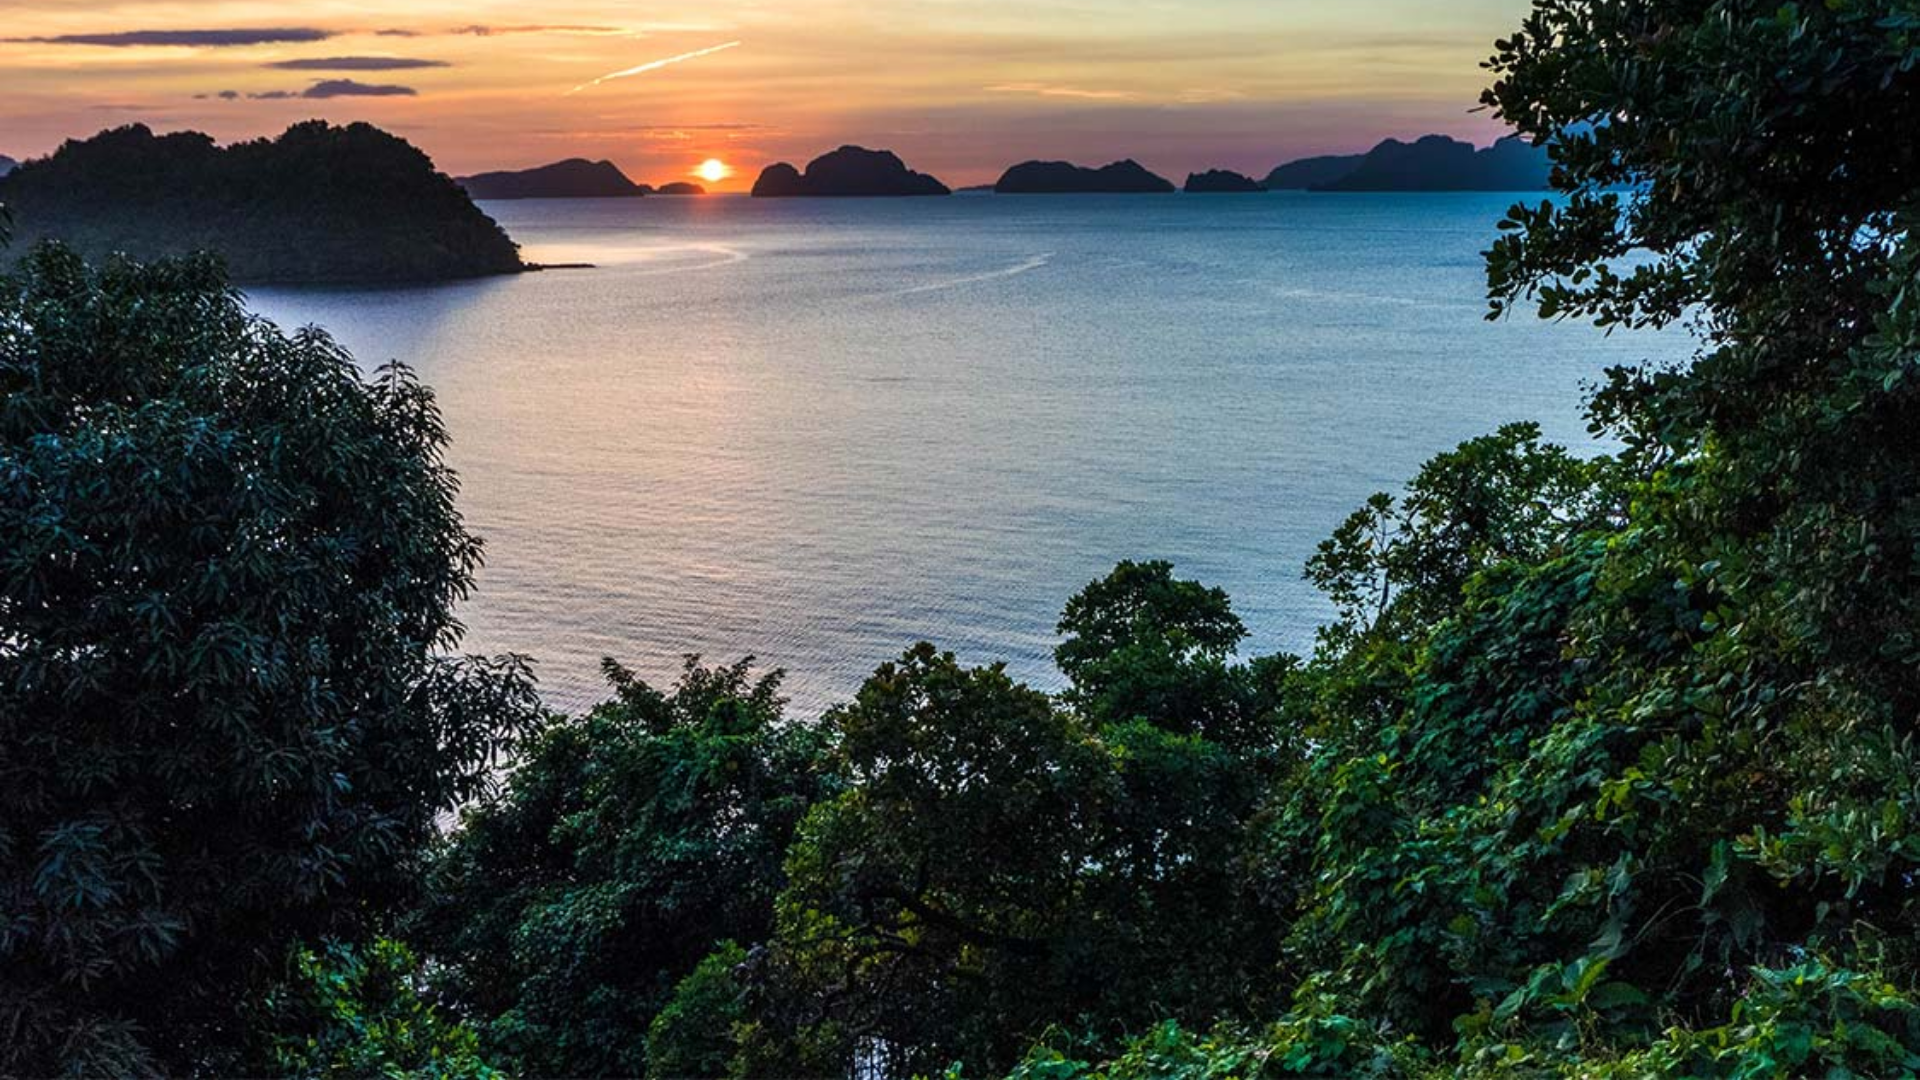 Why Travel with Your Family at The El Nido, Philippines